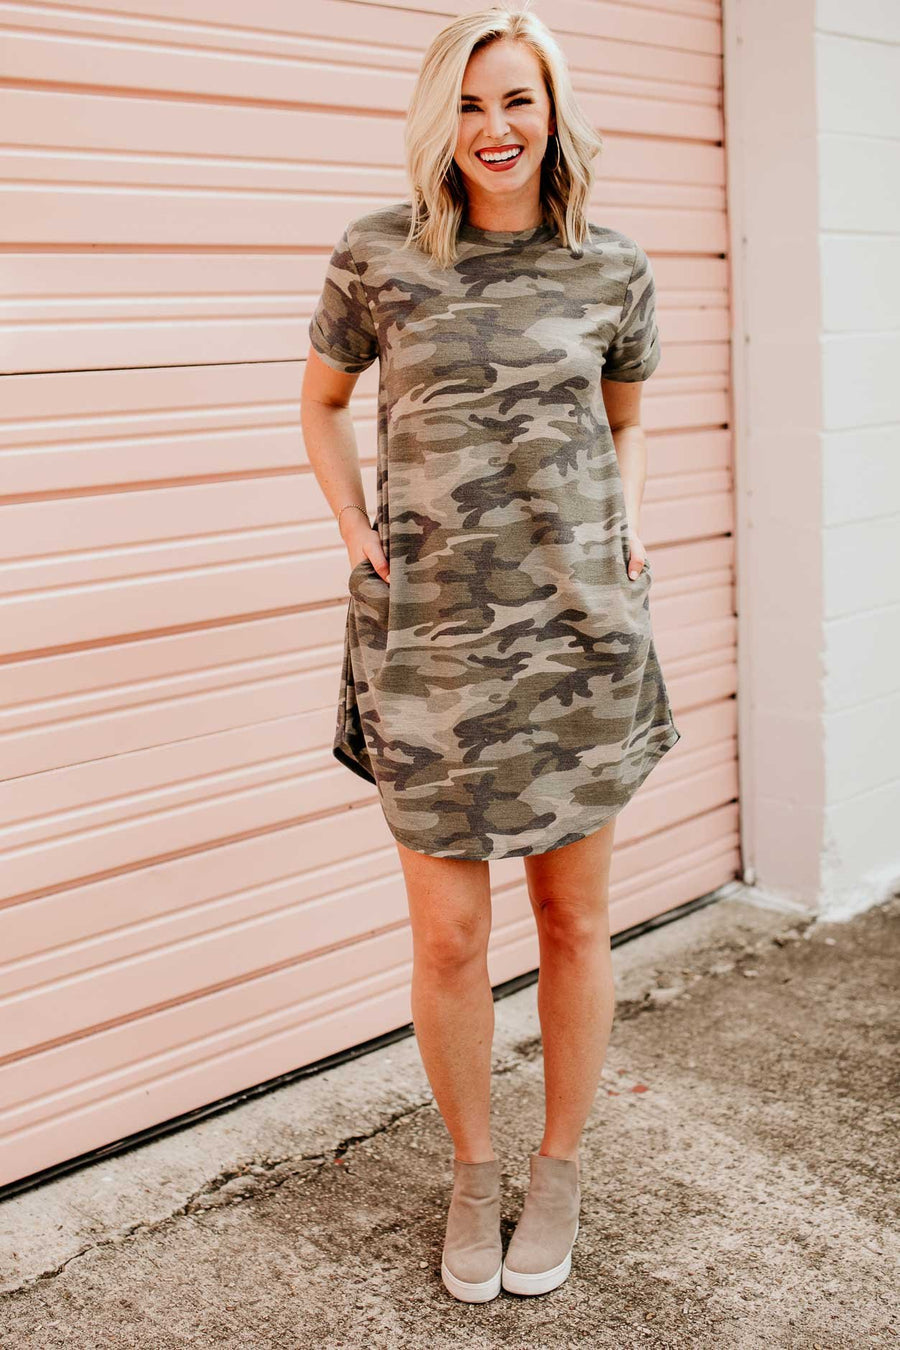 Off The Grid Camo T-shirt Dress